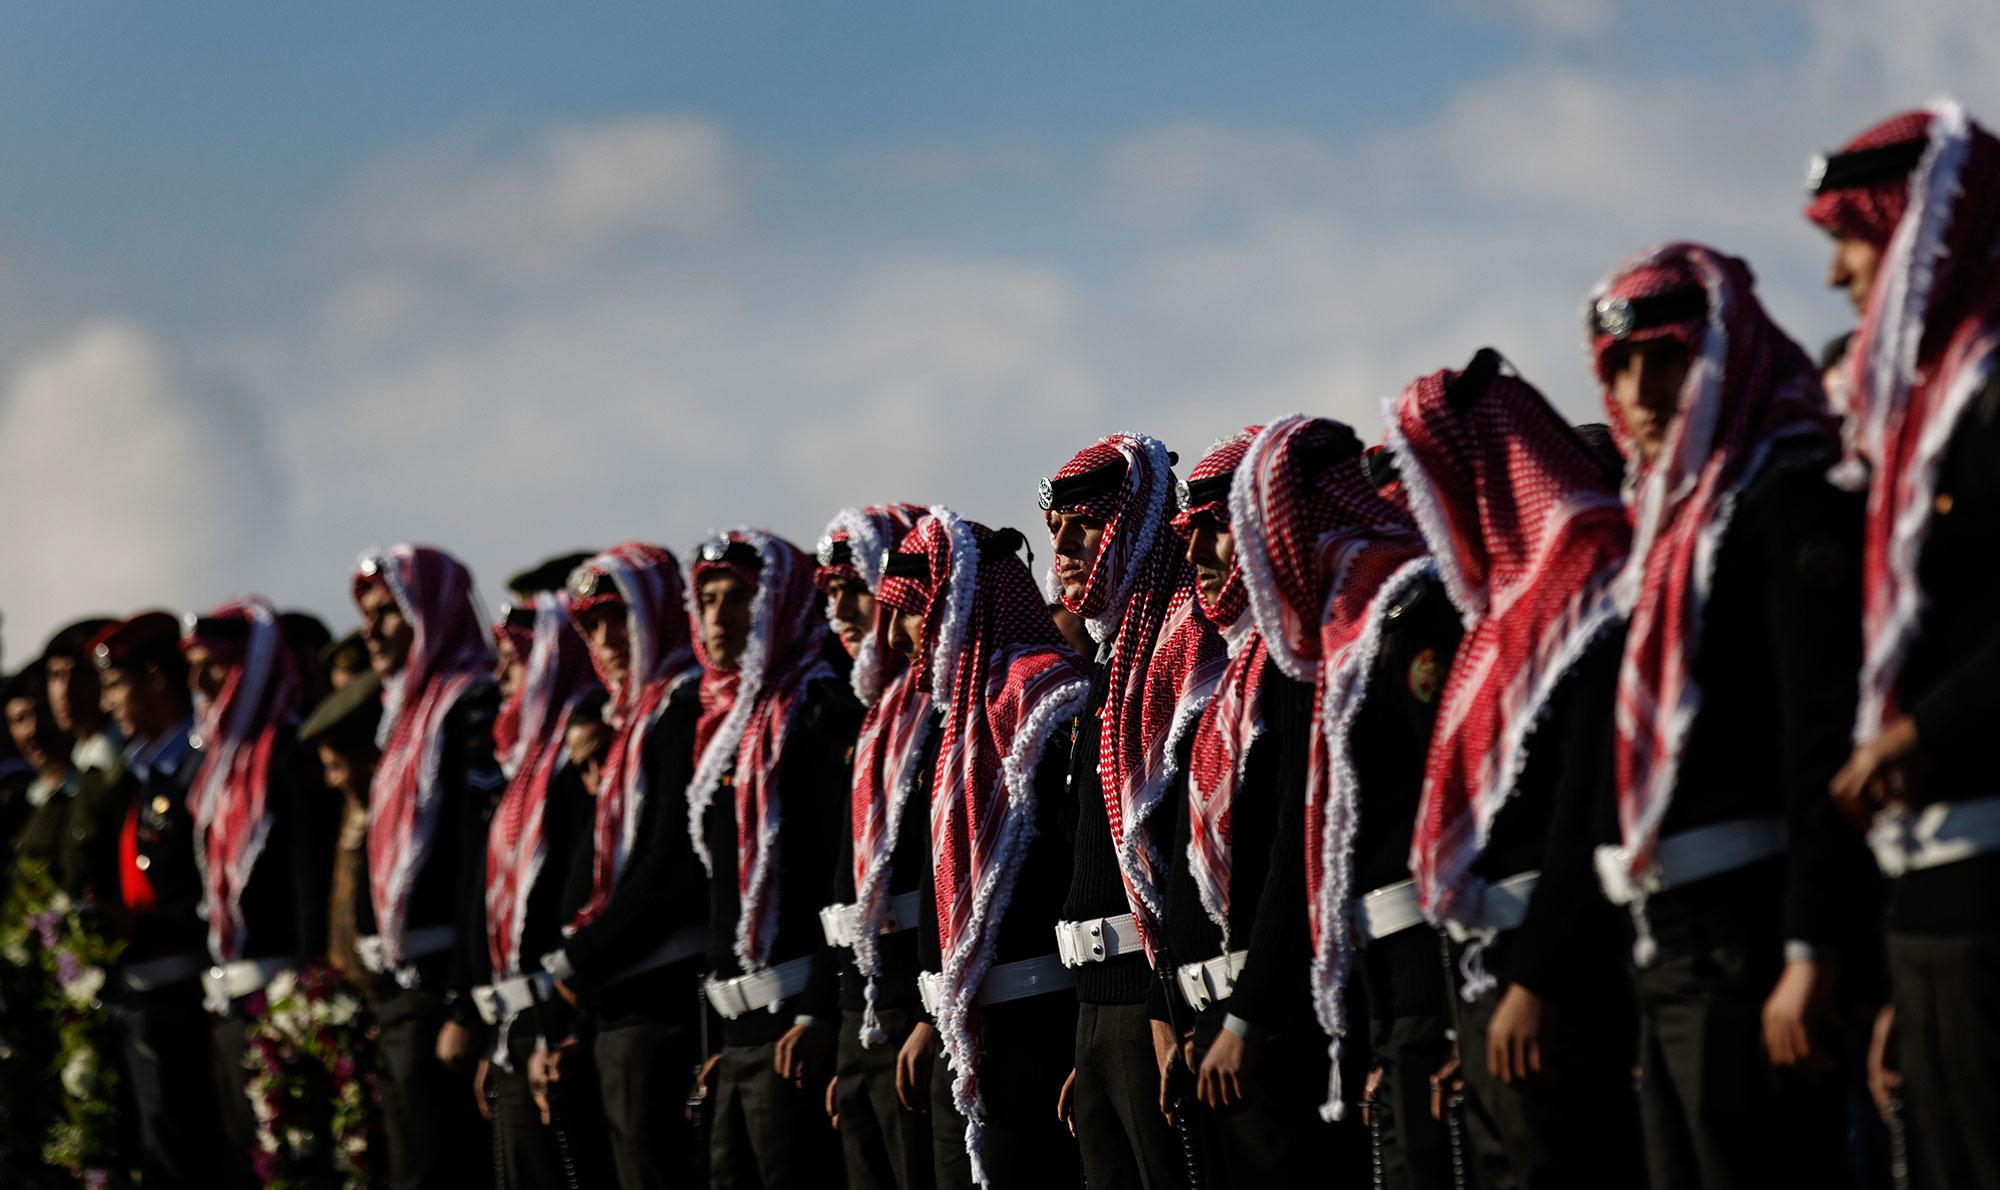 <p>Members of the Jordanian Gendarmerie line the road ahead of the funeral of their killed colleague Lieutenant Colonel Saed al-Maaytah, near the town of Karak, about 140 kilometers (87 miles) south of the capital Amman, in Jordan Monday, Dec. 19, 2016. Gunmen assaulted Jordanian police in a series of attacks Sunday, including at the Karak Crusader castle popular with tourists, killing seven officers, two local civilians and a woman visiting from Canada, officials said. (Photo: Ben Curtis/AP) </p>